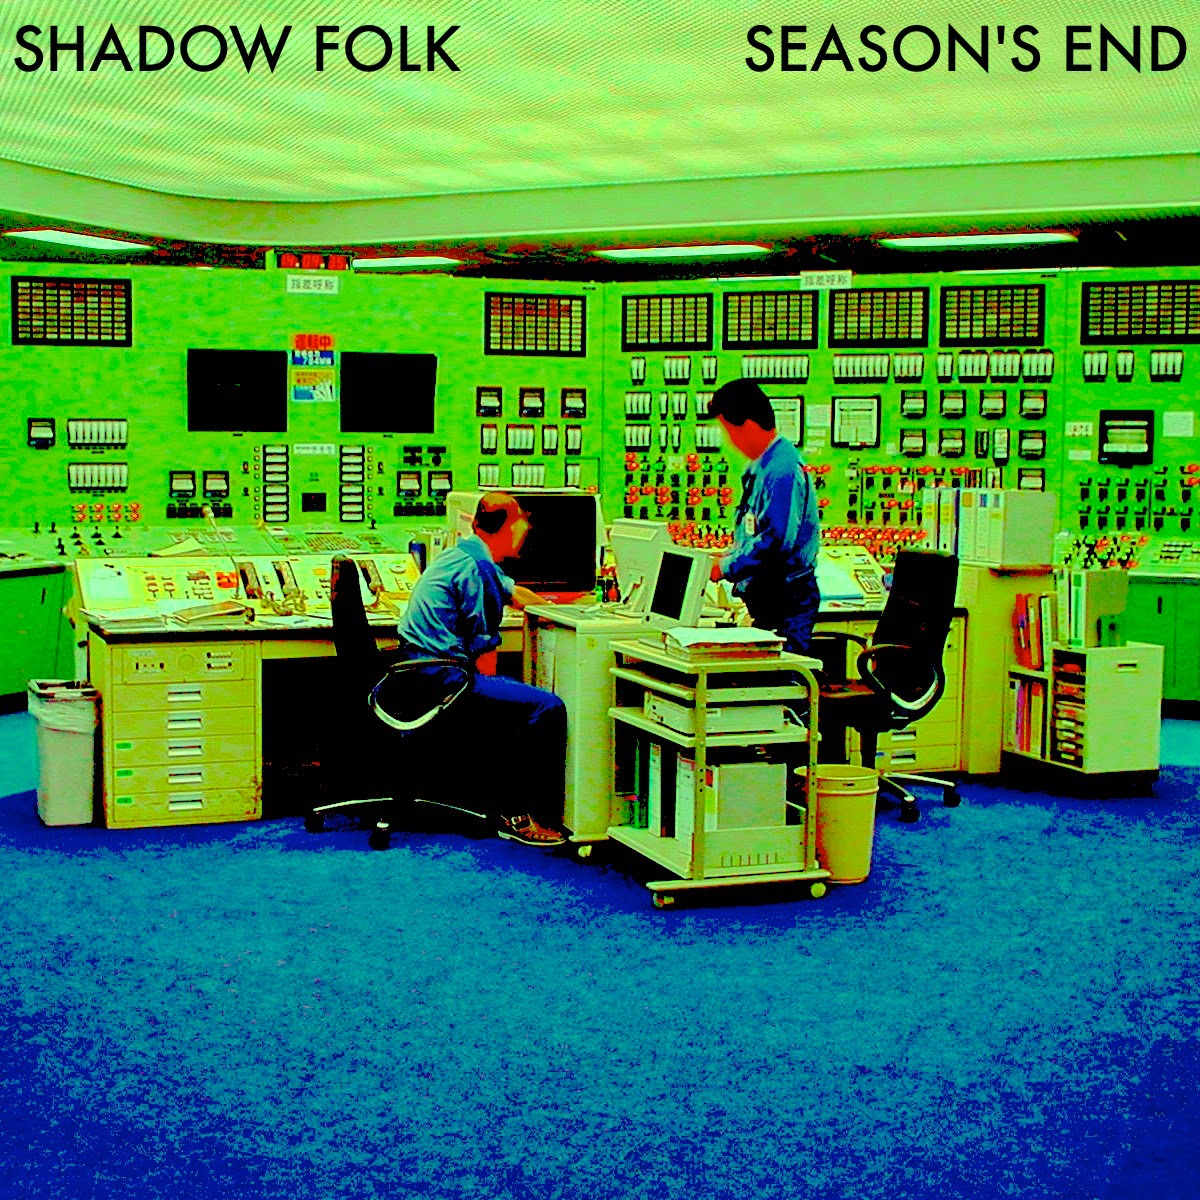 http://www.d4am.net/2014/07/shadow-folk-seasons-end.html